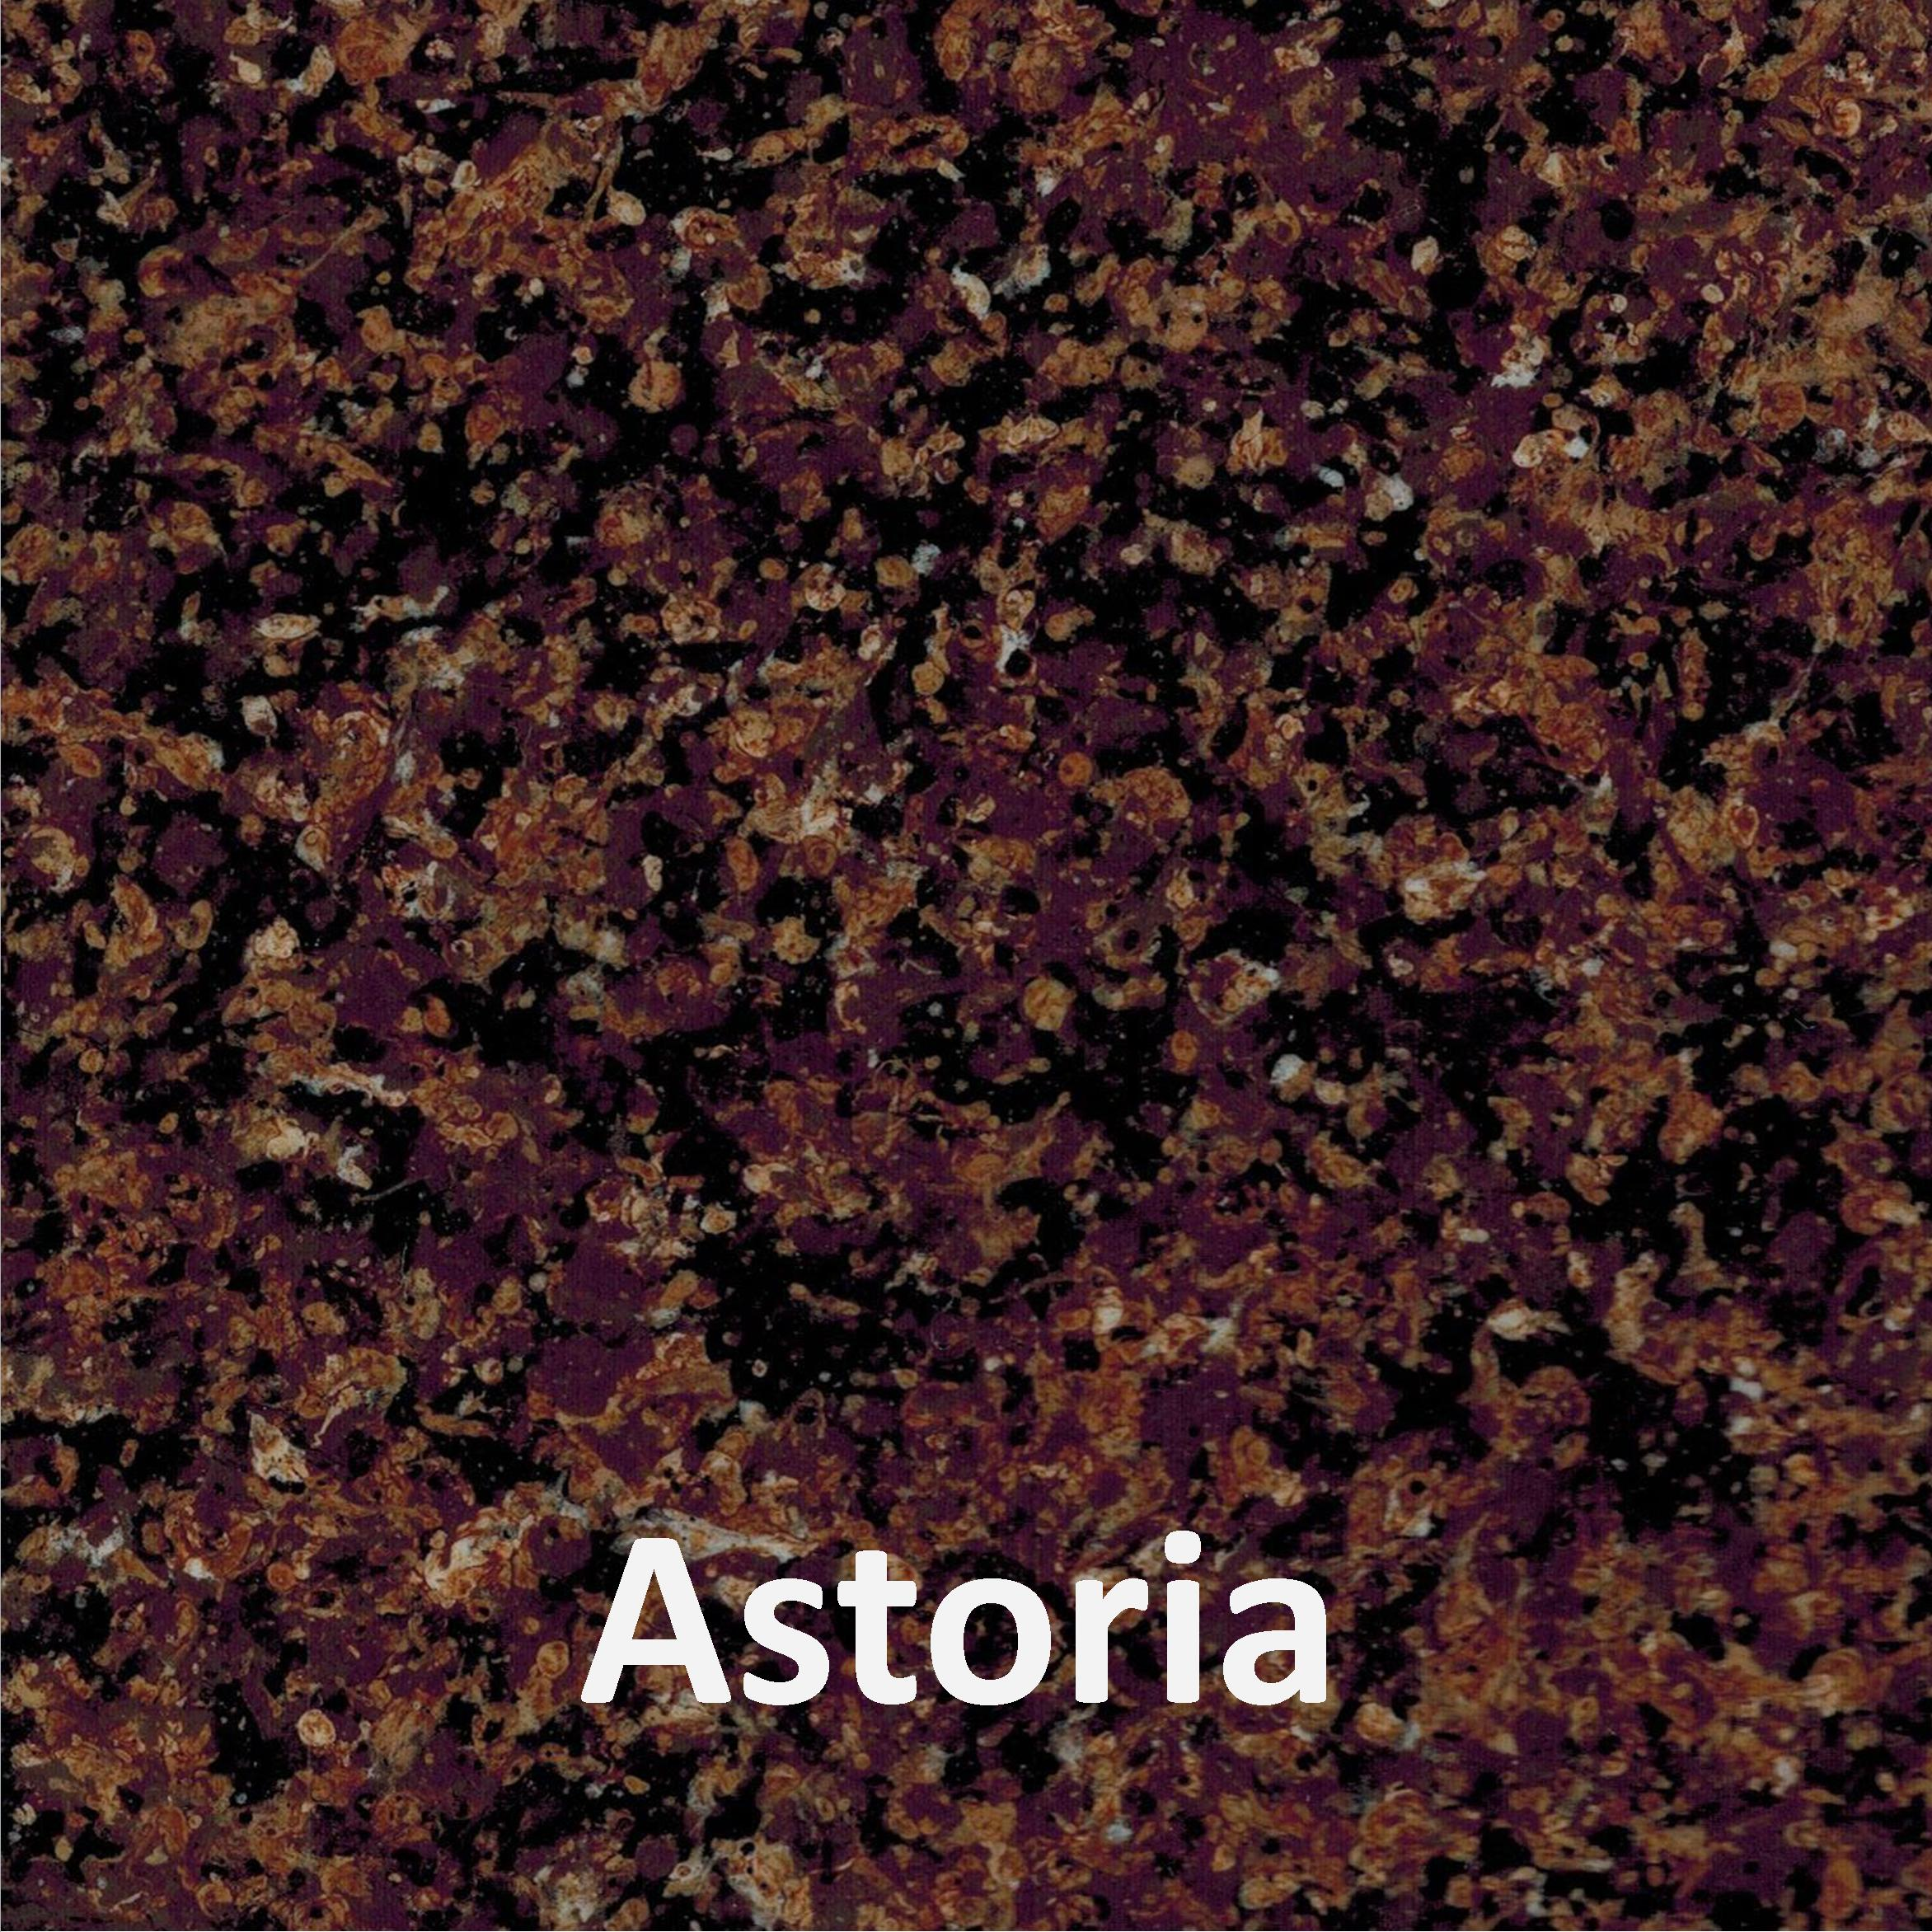 astoria-label.jpg